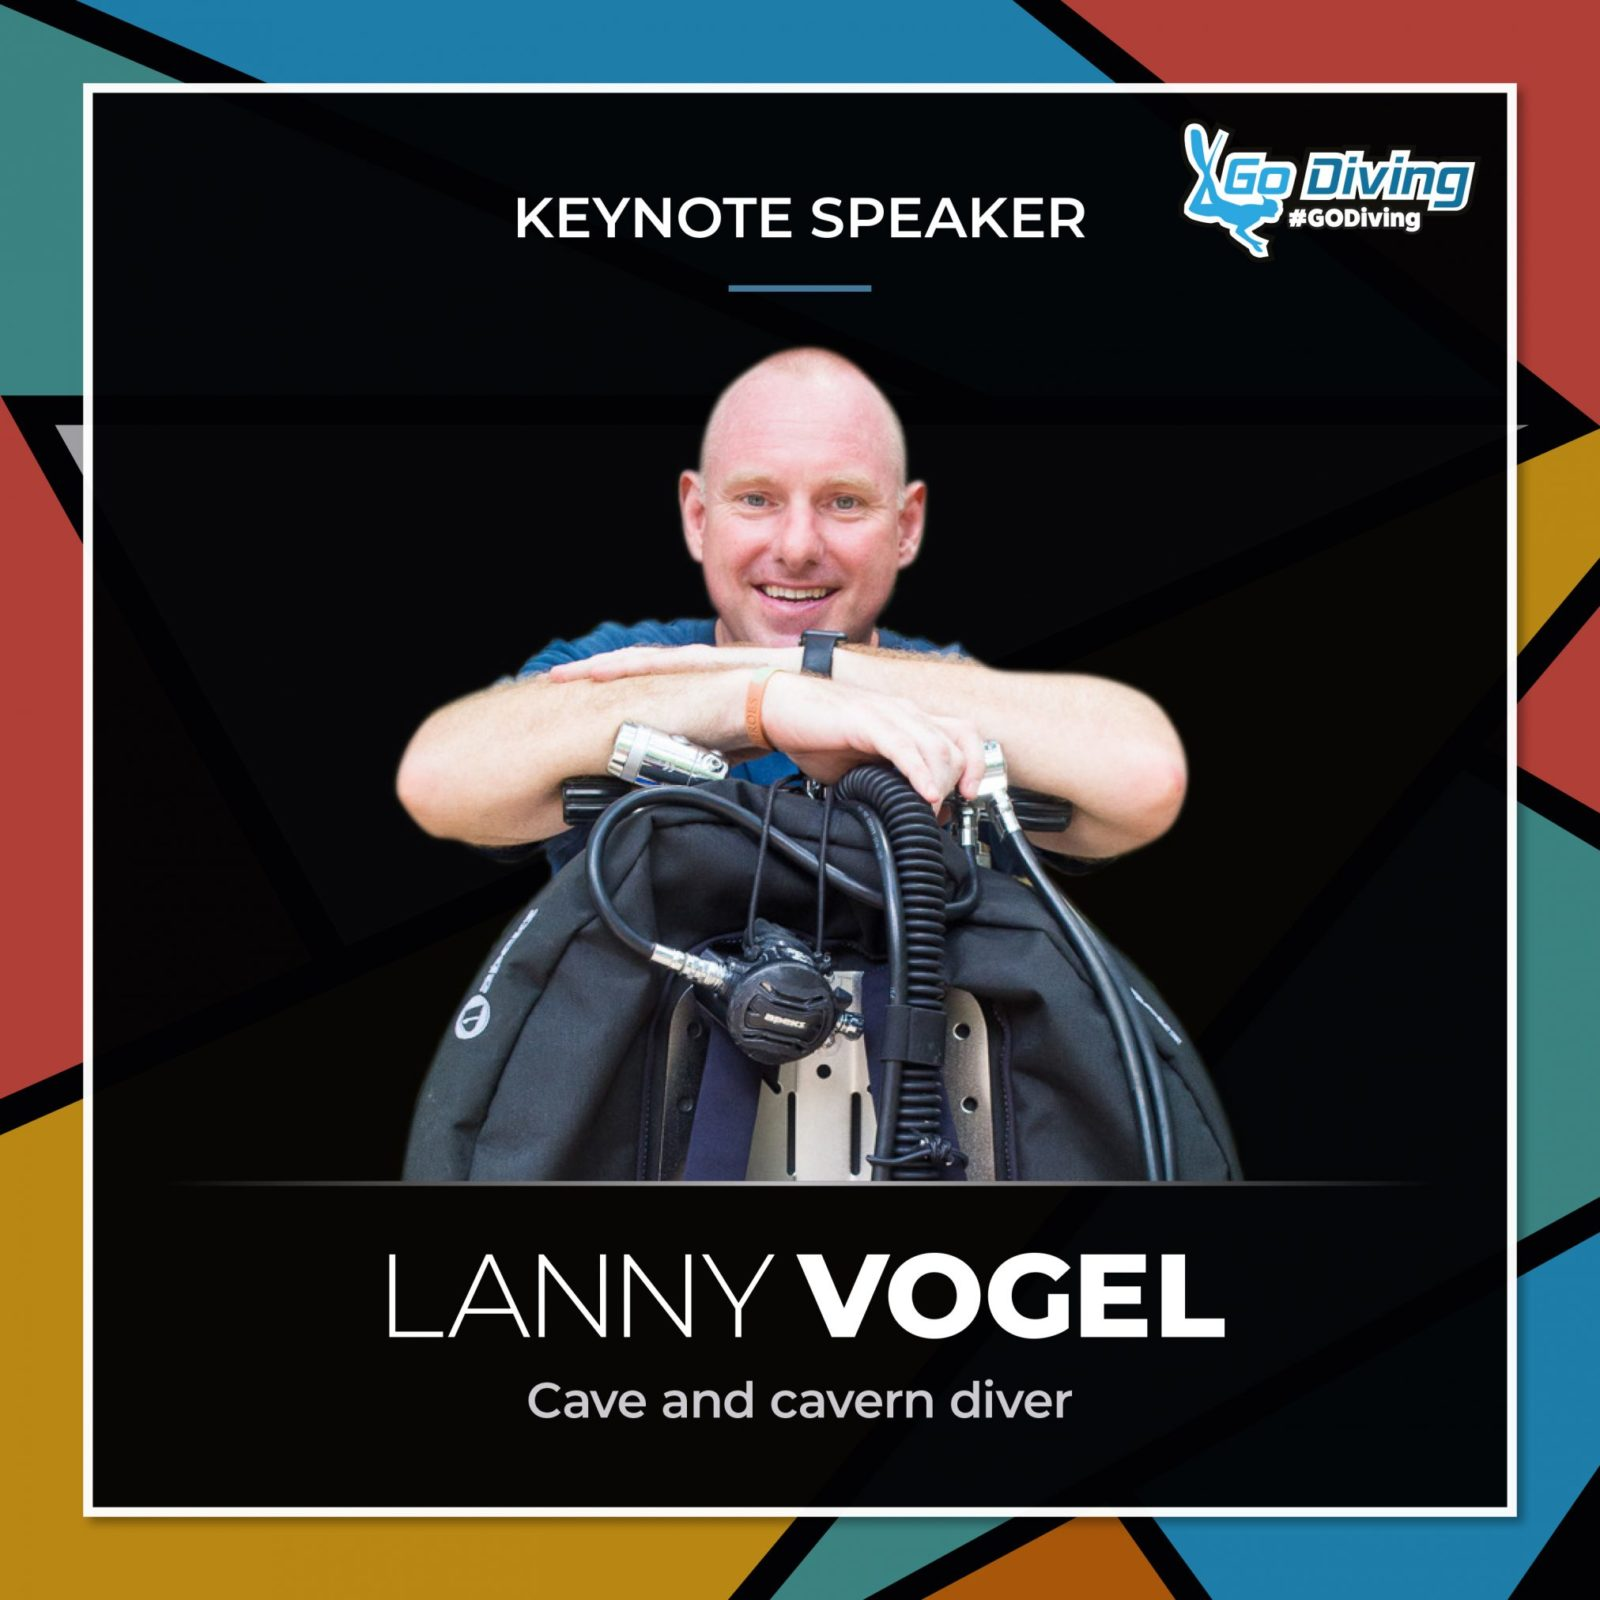 GO Diving Show Speaker Profile - Lanny Vogel 1